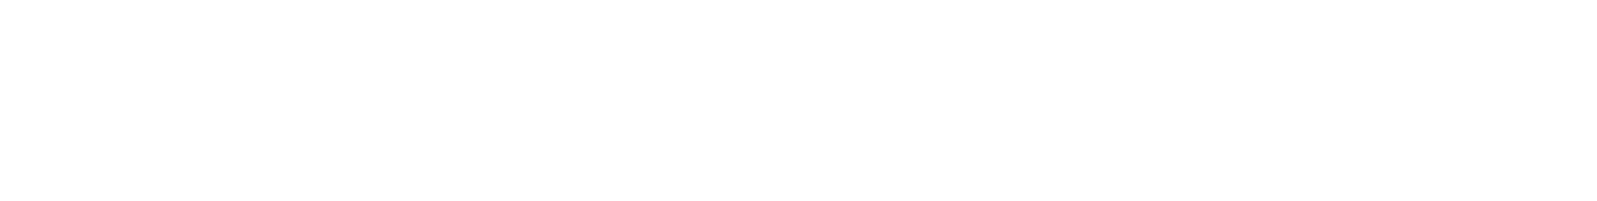 College of Arts and Sciences, The Clara Luper Department of African and African-American Studies, The University of Oklahoma website wordmark